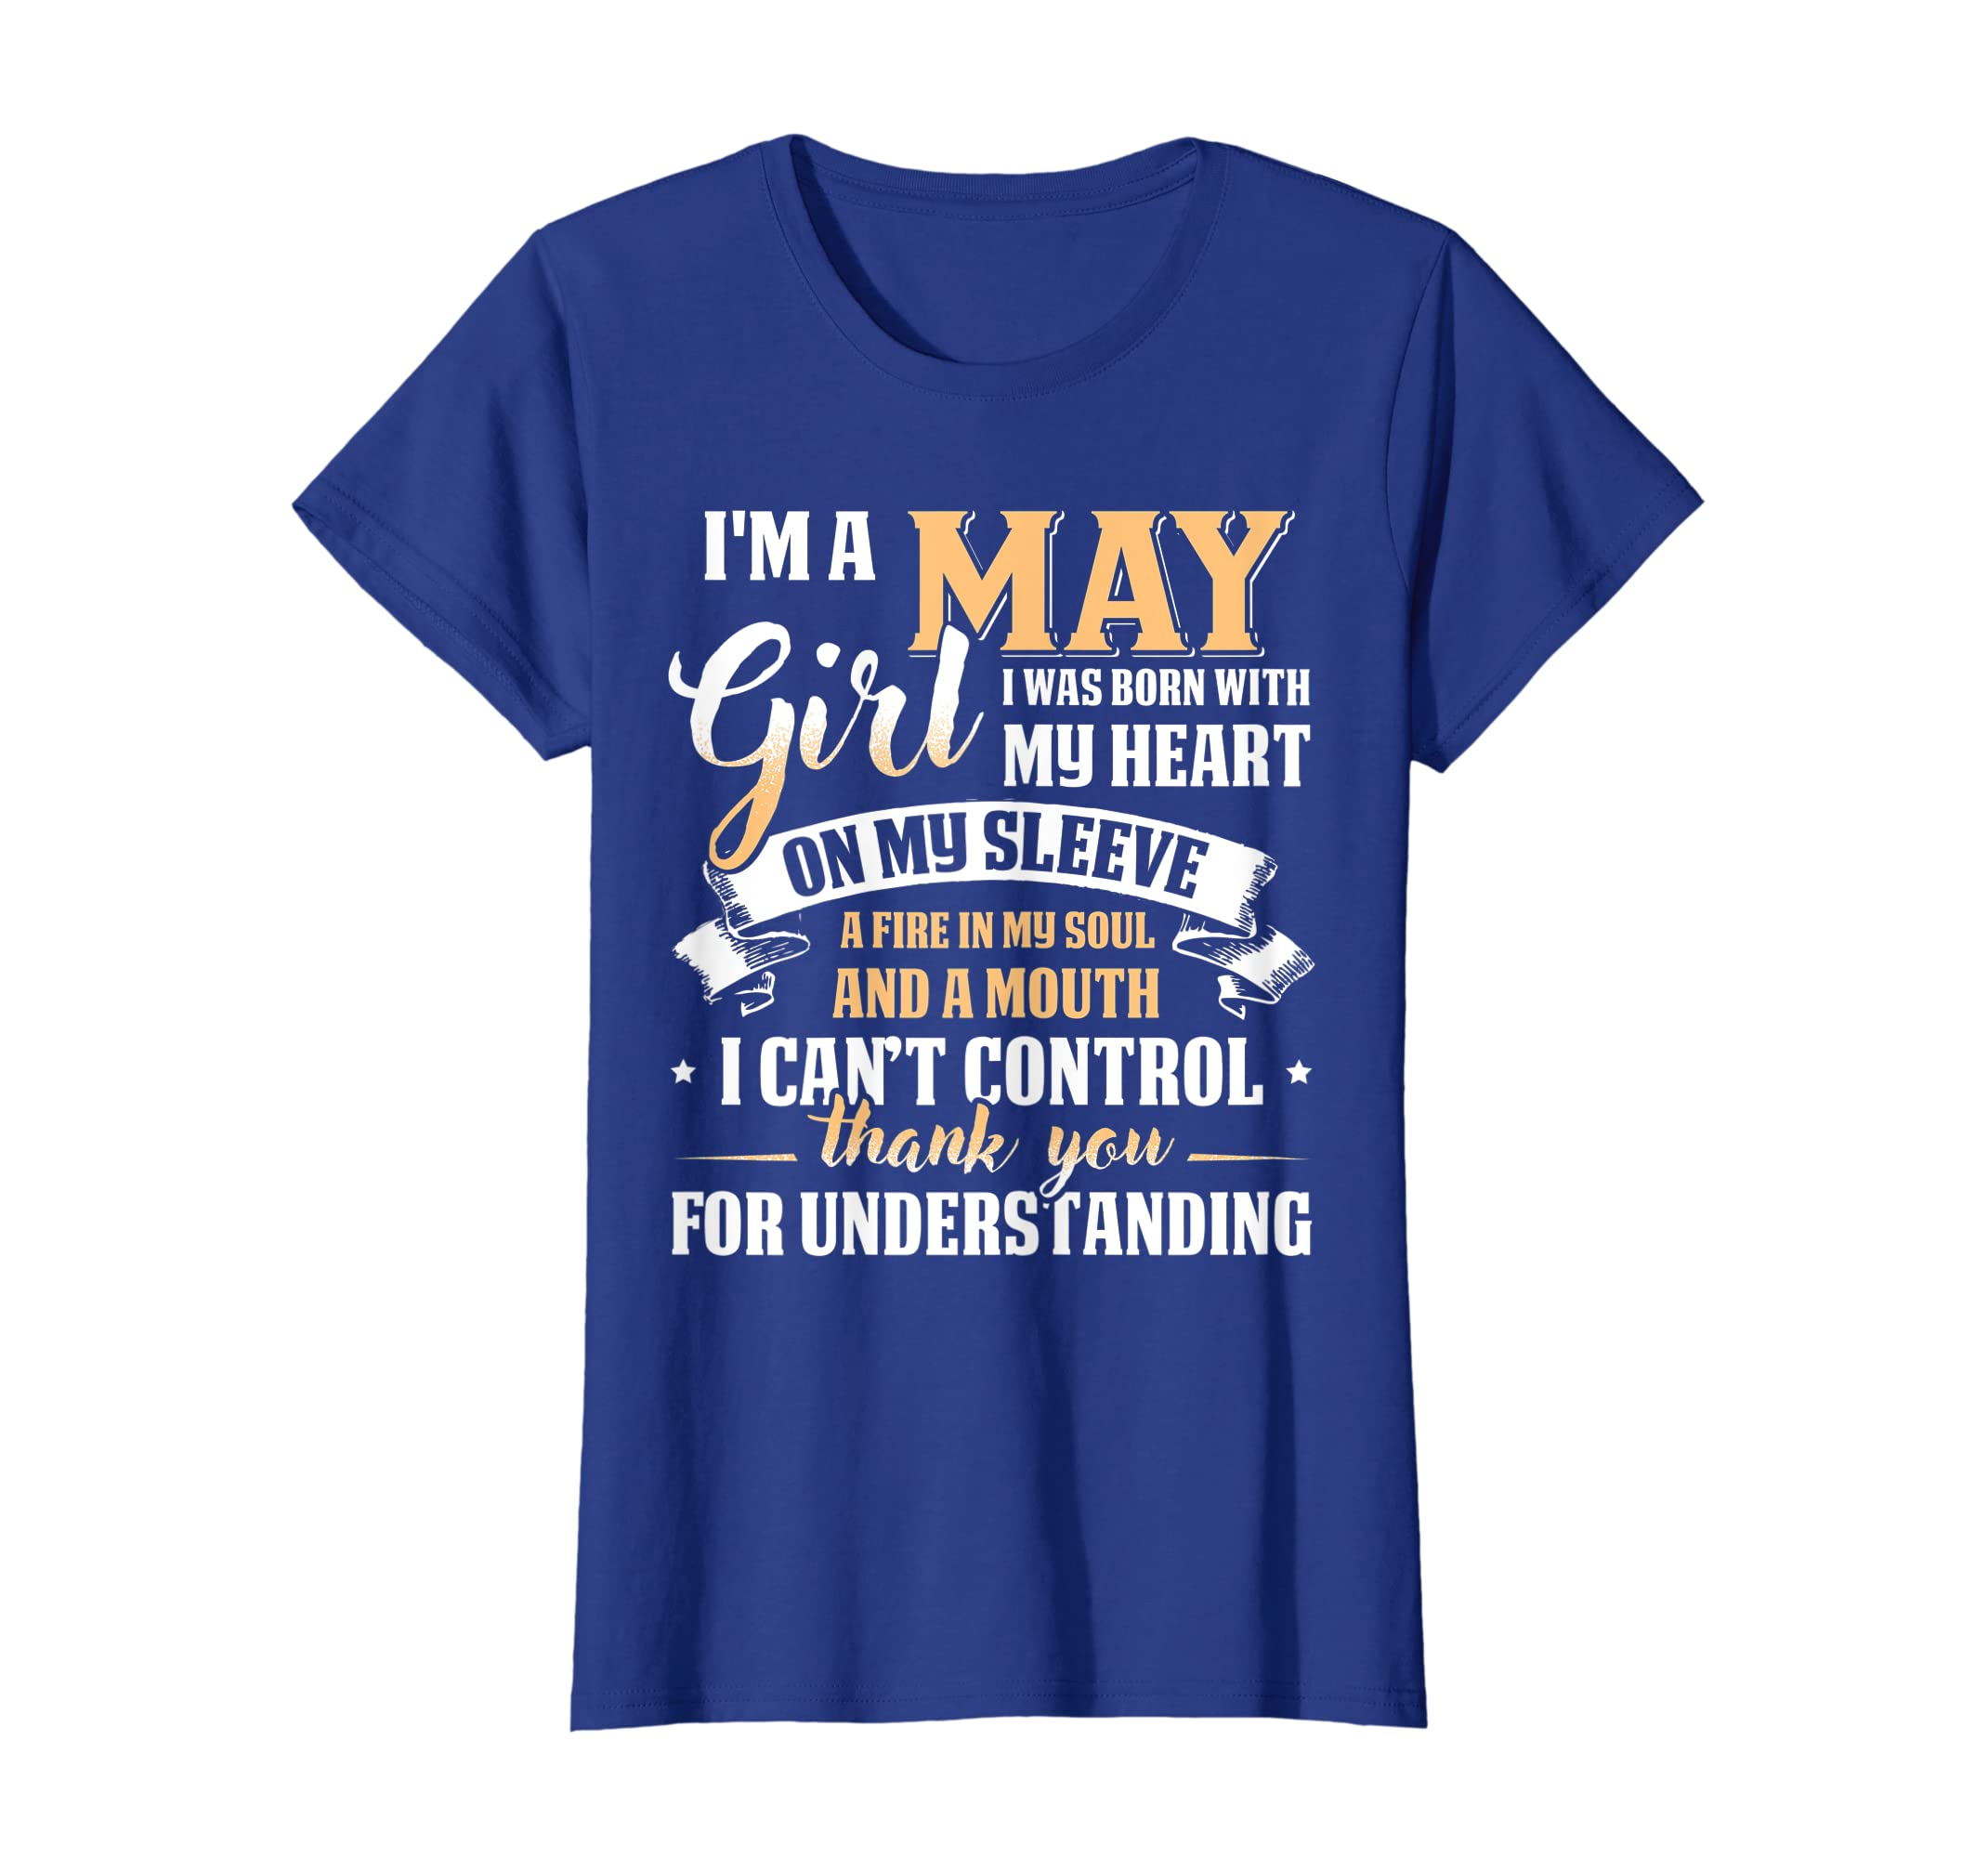 038c1f223 Amazon.com: I'm A May Girl T-Shirt Special Gift For Birthday Shirt: Clothing